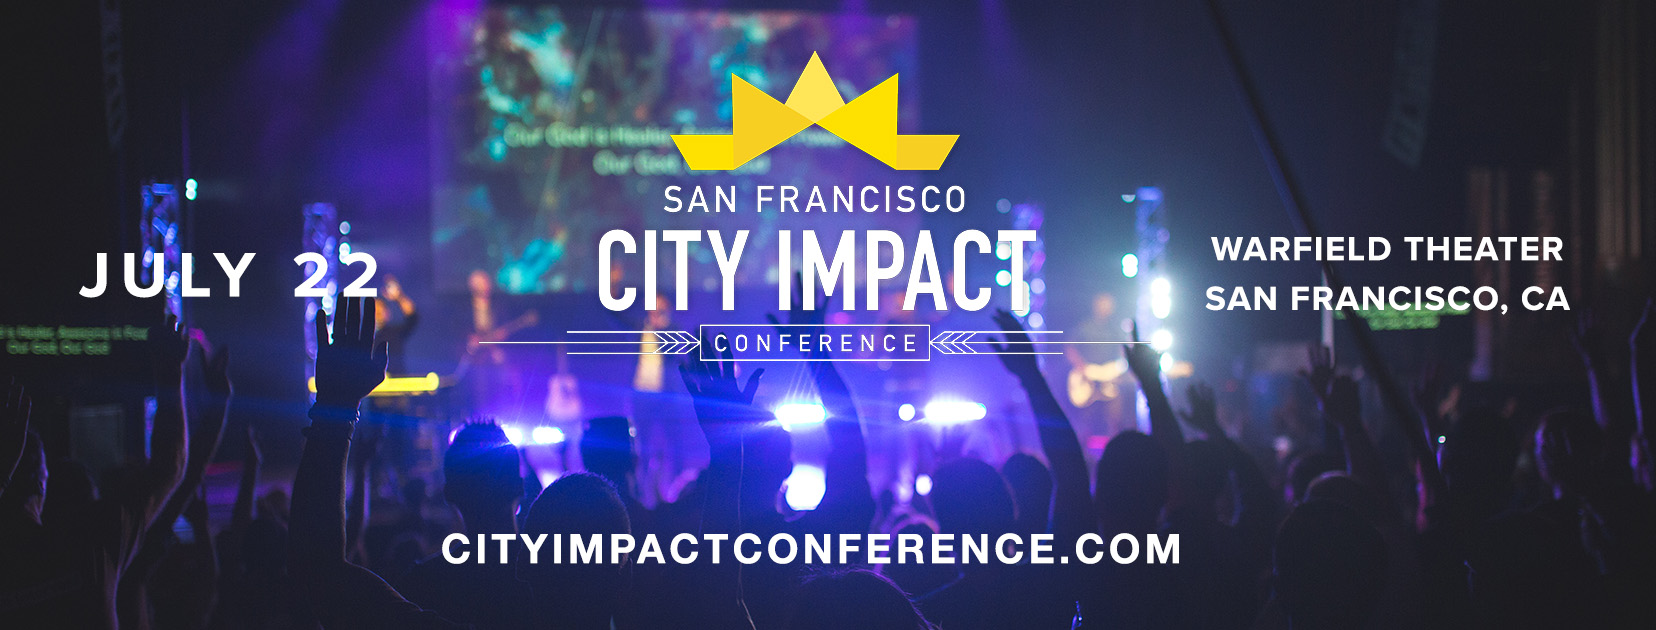 City Impact Conference 2017